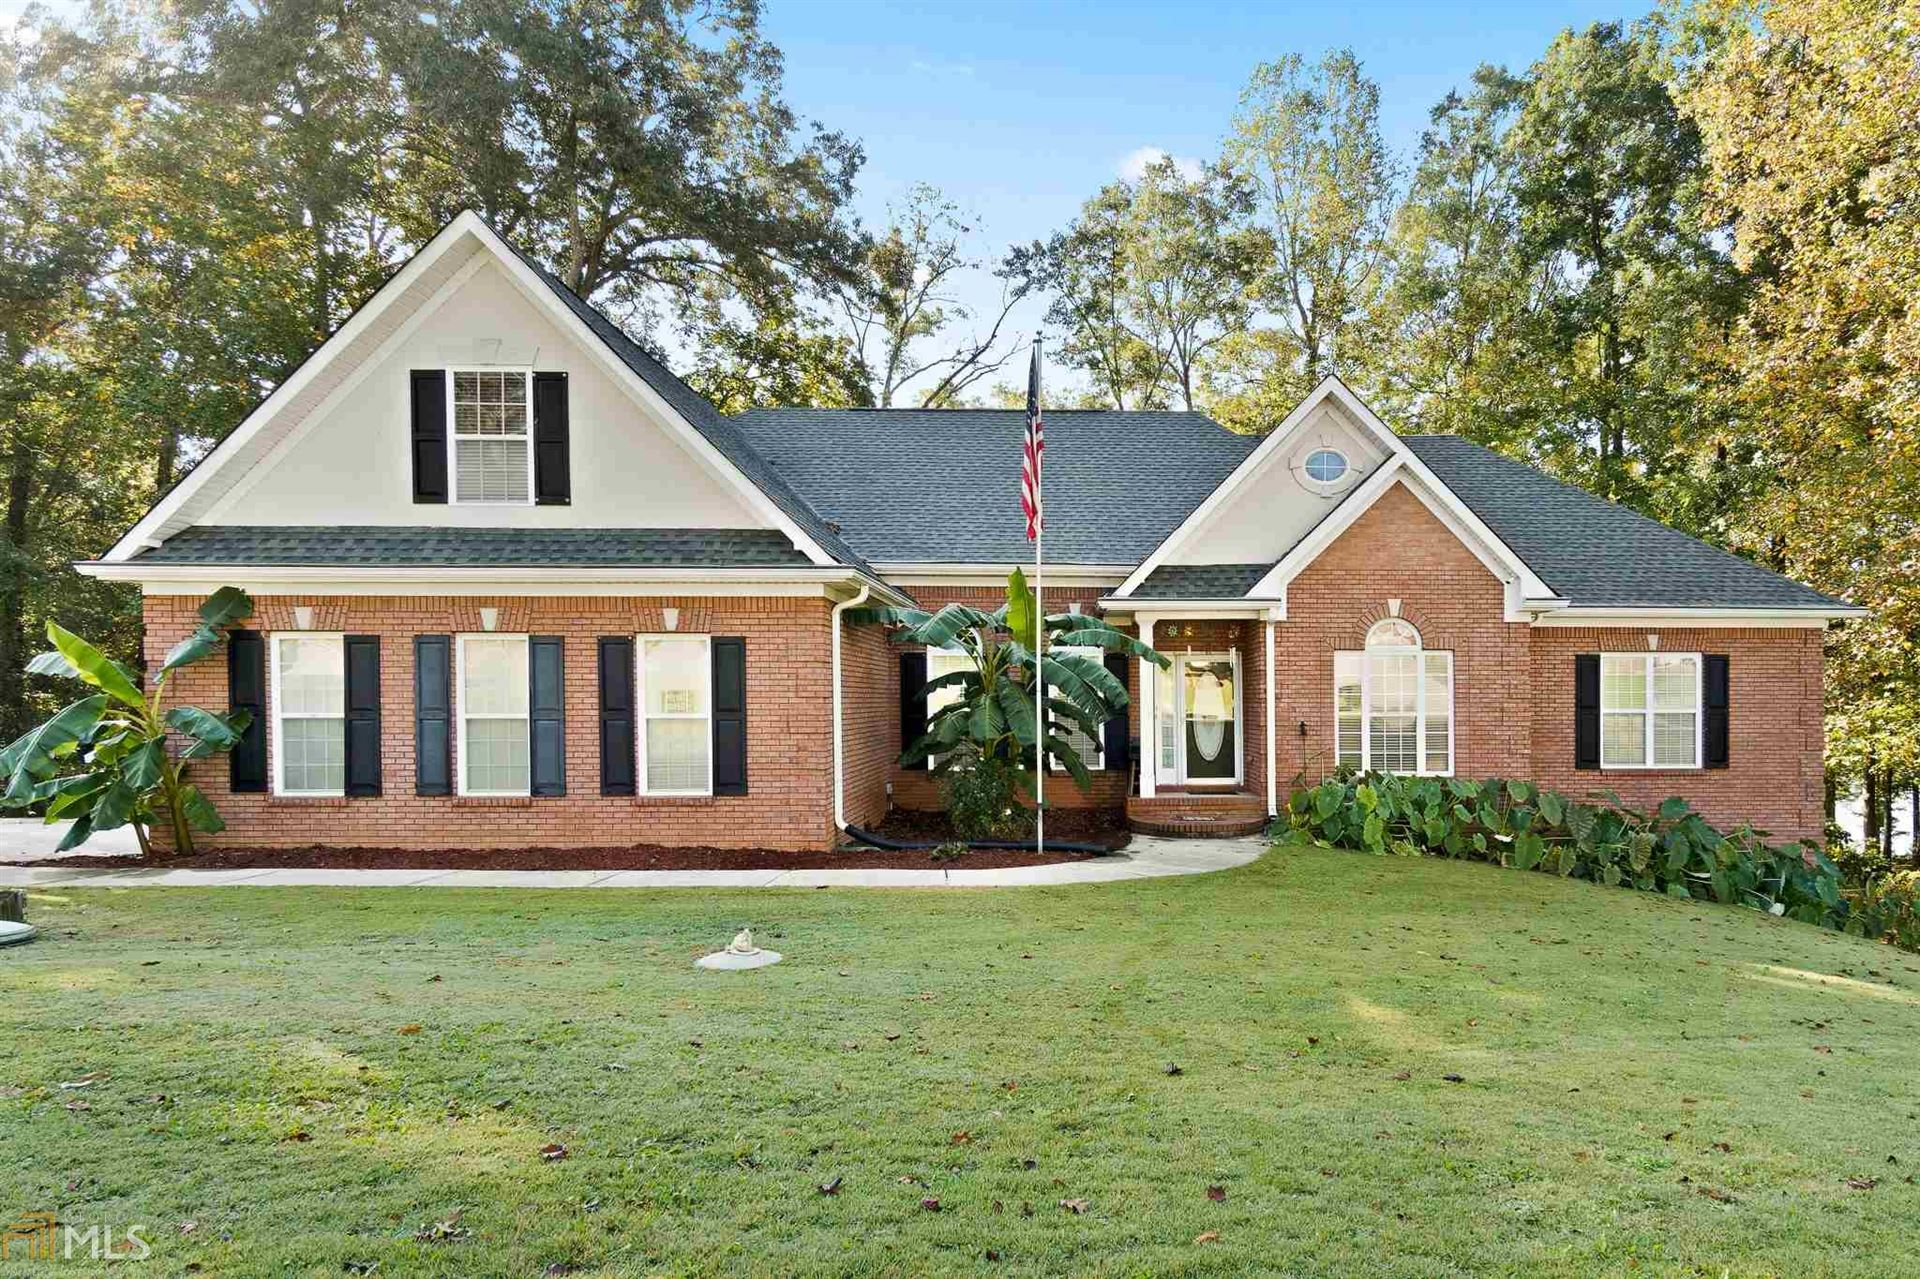 68 Contour Dr, Stockbridge, GA 30281 - #: 8877460